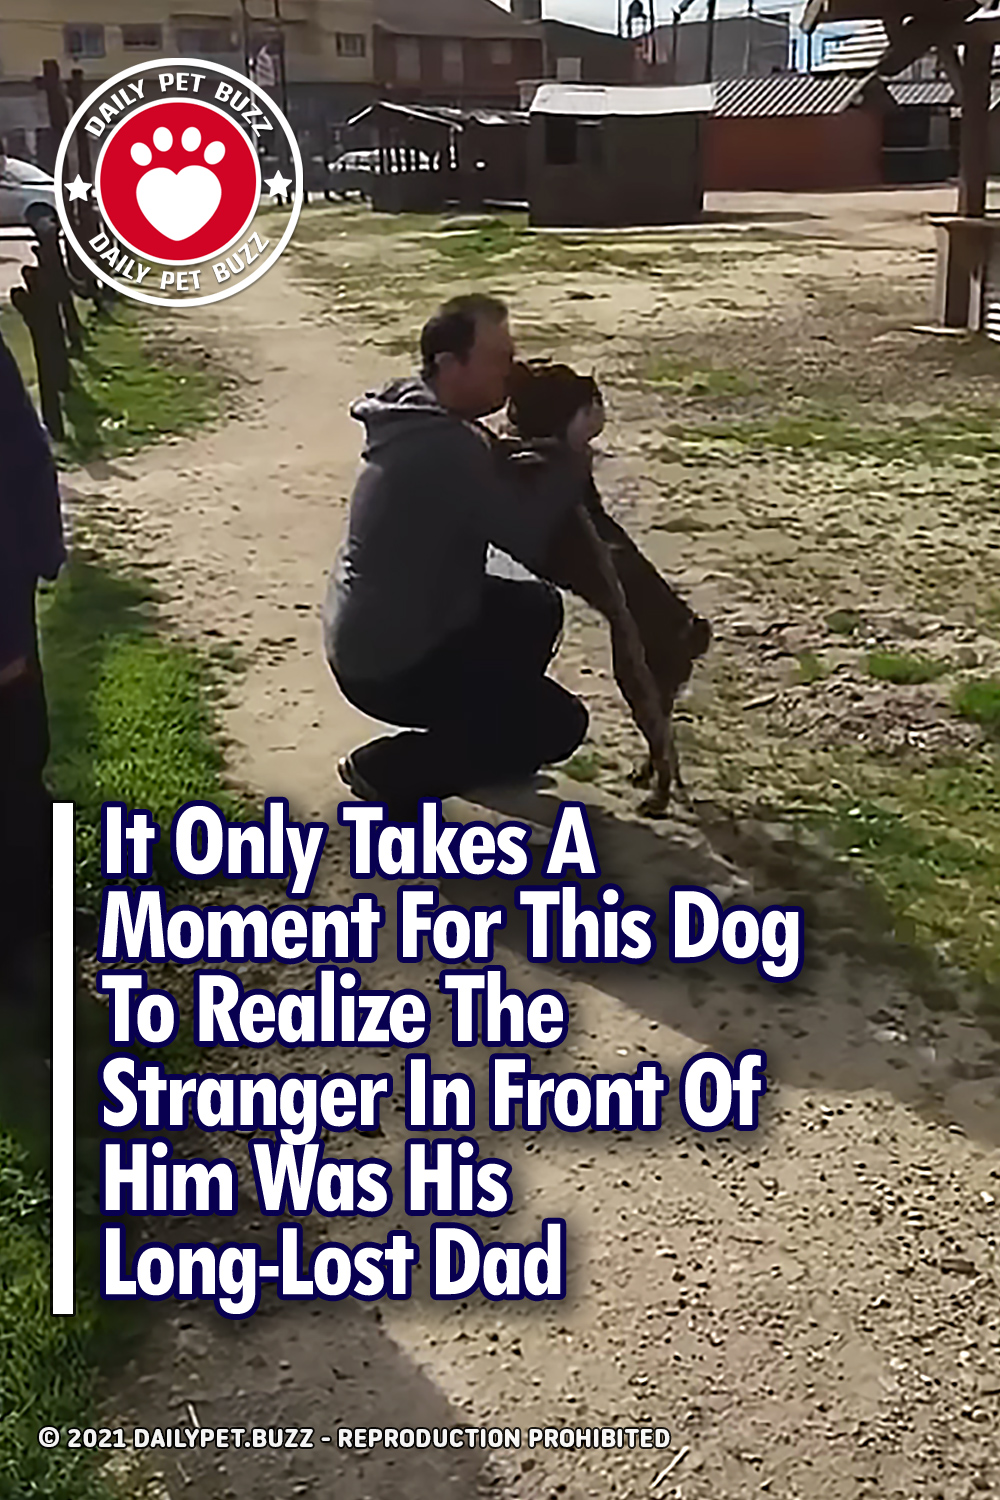 It Only Takes A Moment For This Dog To Realize The Stranger In Front Of Him Was His Long-Lost Dad